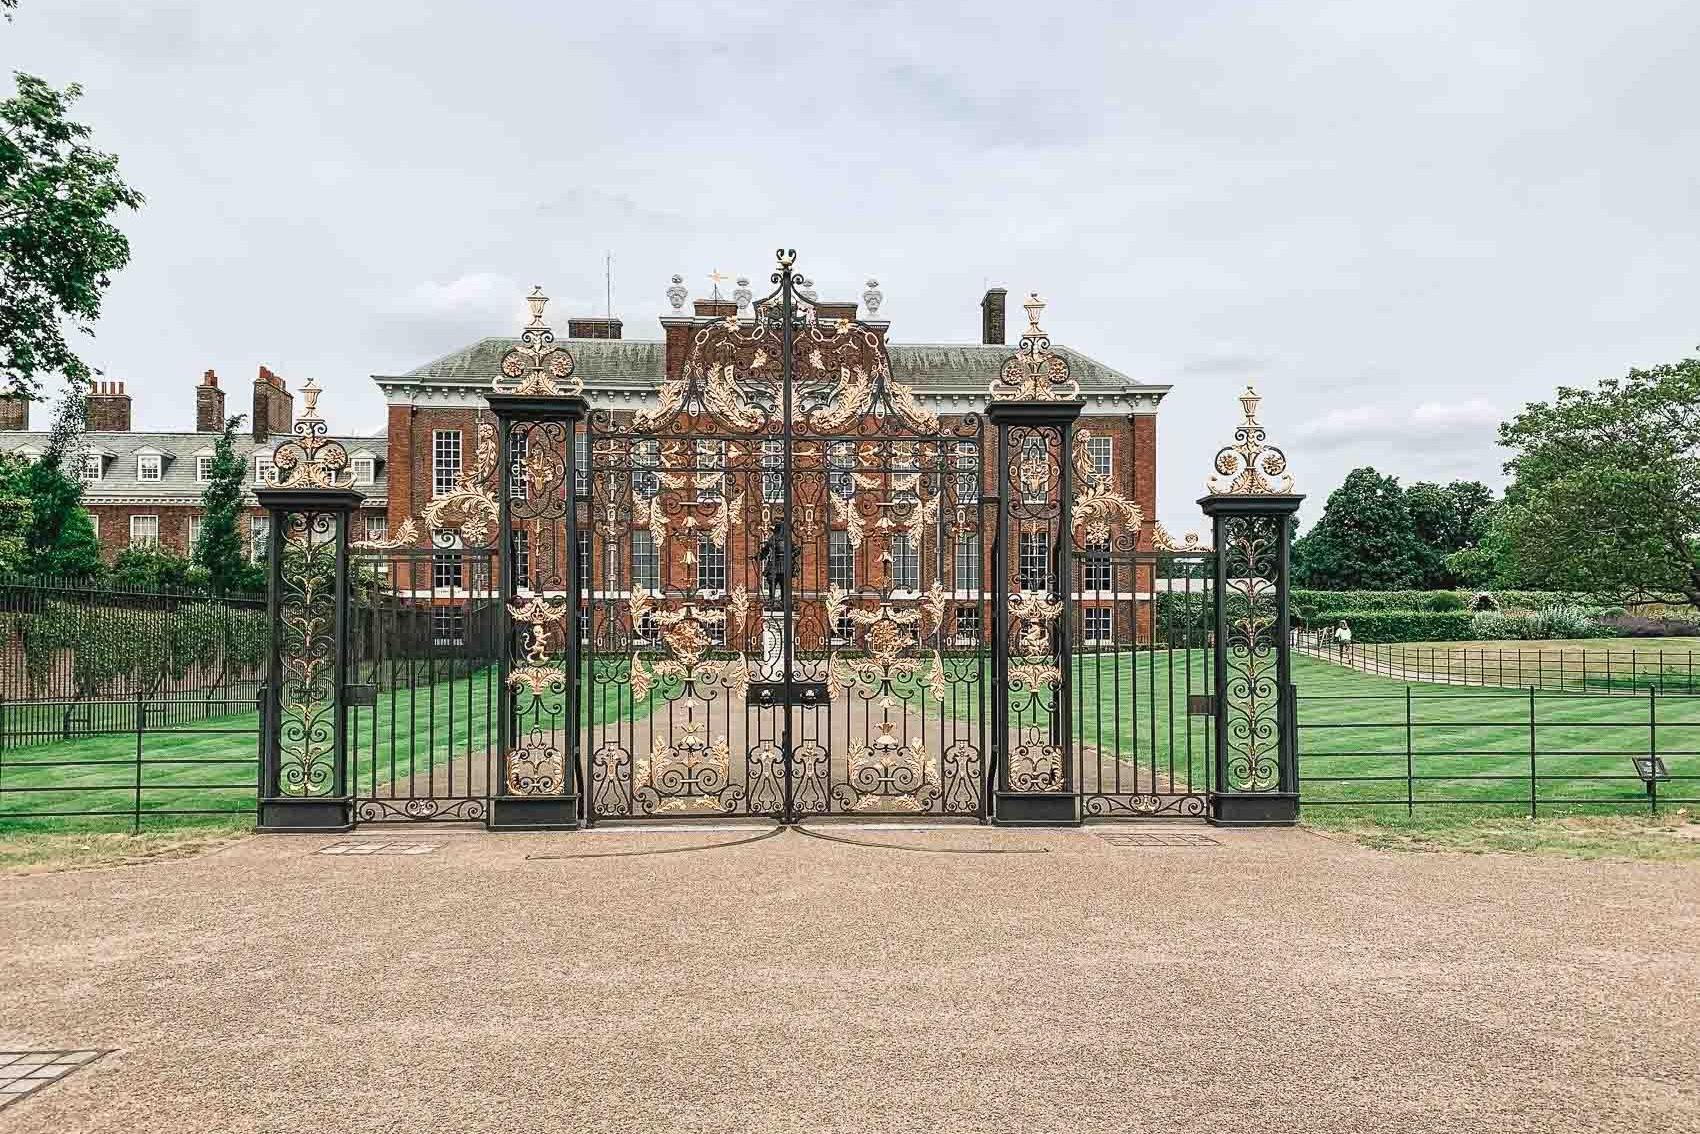 Kensington Palace in London - things to do in London